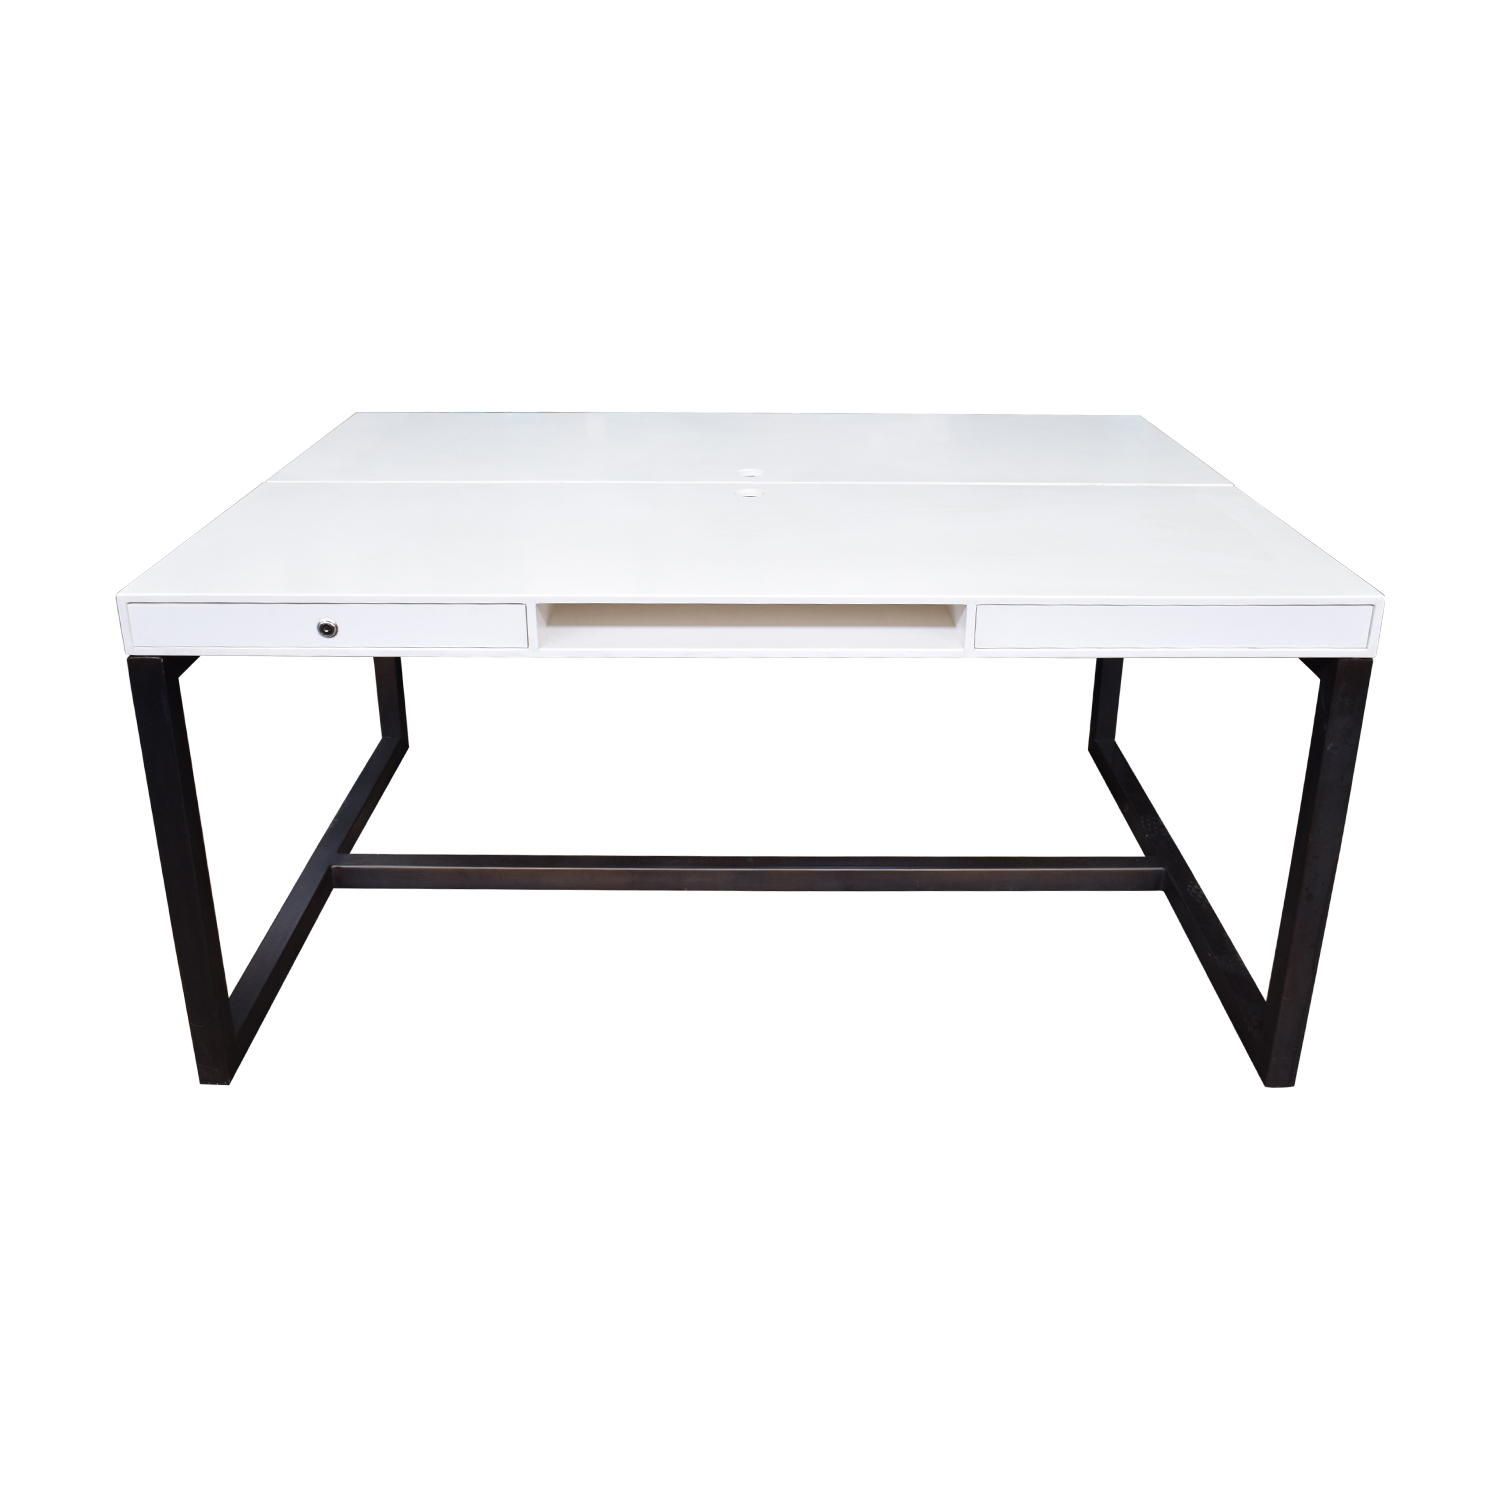 Custom Double Corian and Steel Desk price